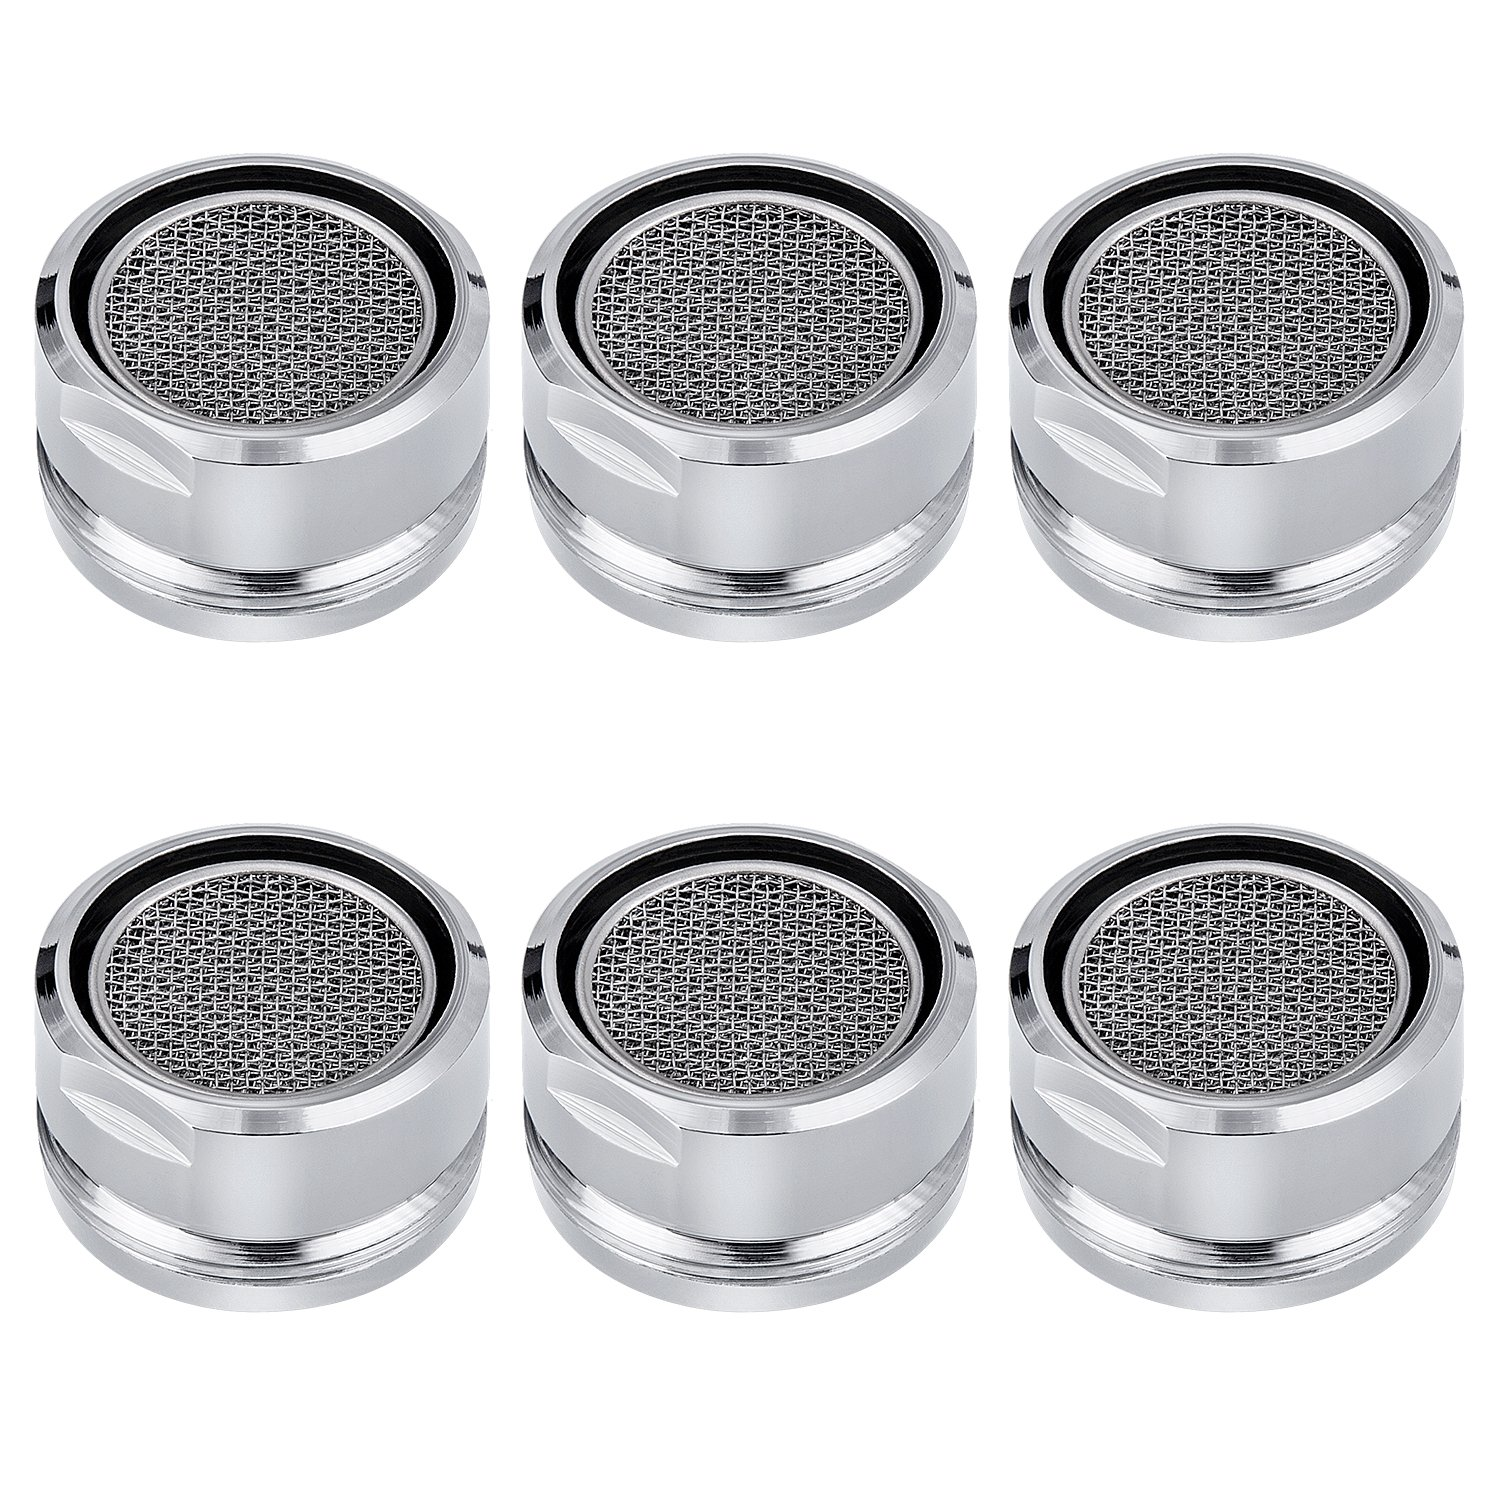 6PCS Faucet Aerators, Male Threaded Brass Aerator With Faucet Replacement Part for Bathroom Kitchen Awpeye